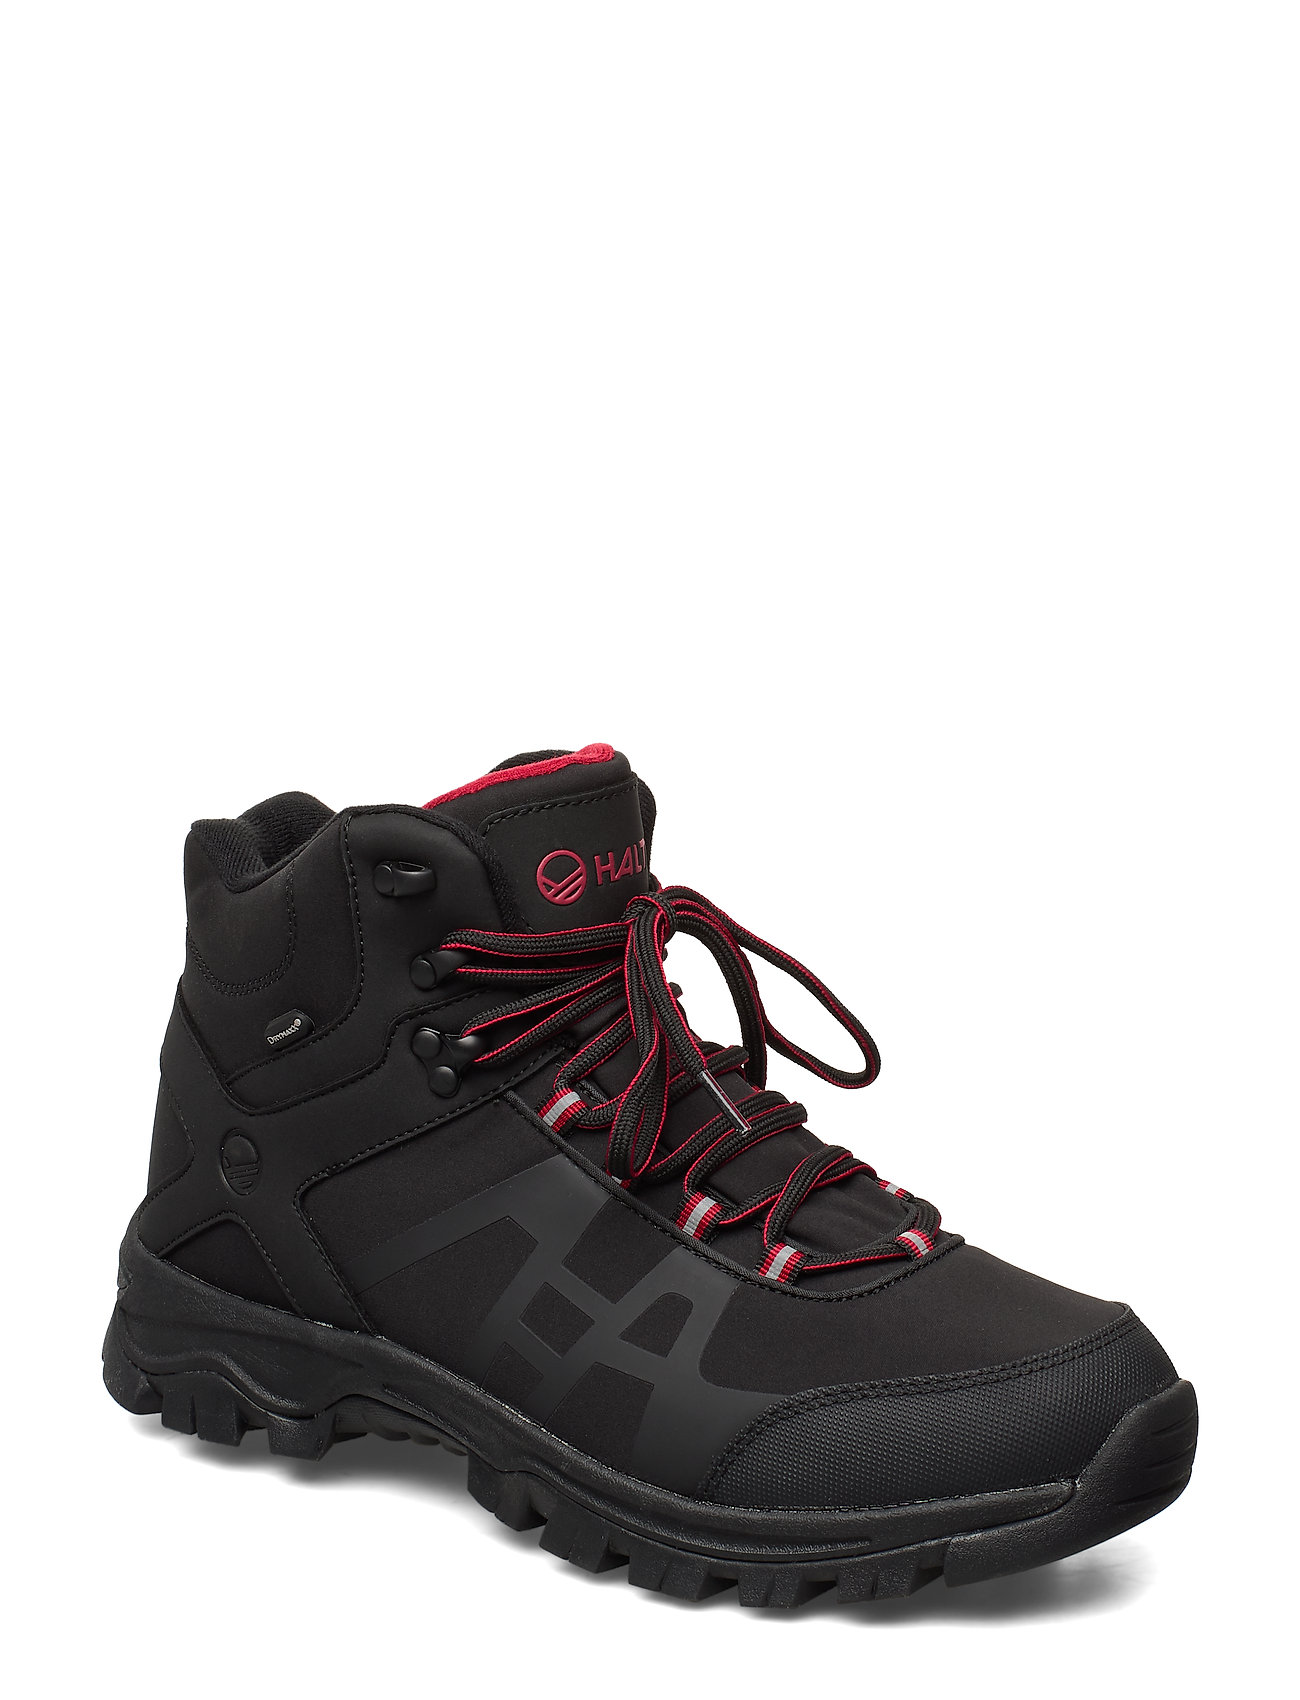 Image of Redo Mid Dx M Spike Shoe Shoes Sport Shoes Training Shoes- Golf/tennis/fitness Sort Halti (3285594147)